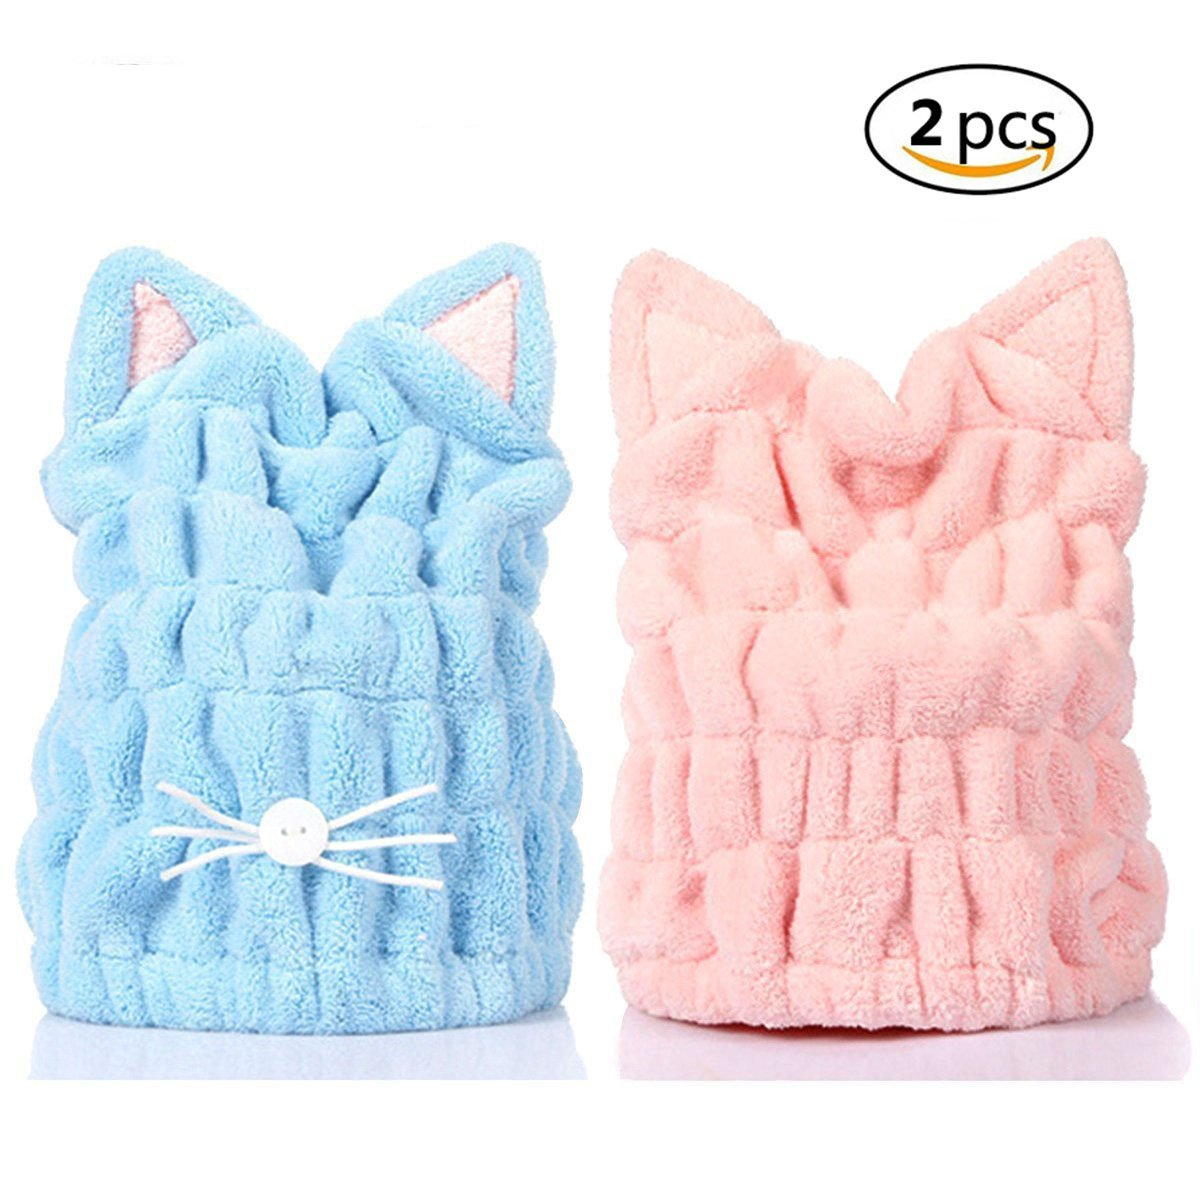 Microfiber Hair Drying Cap Cute Cartoon Cat with Super Soft Absorbent Dry Hat Hair Wrap Towel Quick Drying Bath Towel for Shower Spa, Adjustable Wrapped Bath Cap 2 Pack(Blue & Pink)